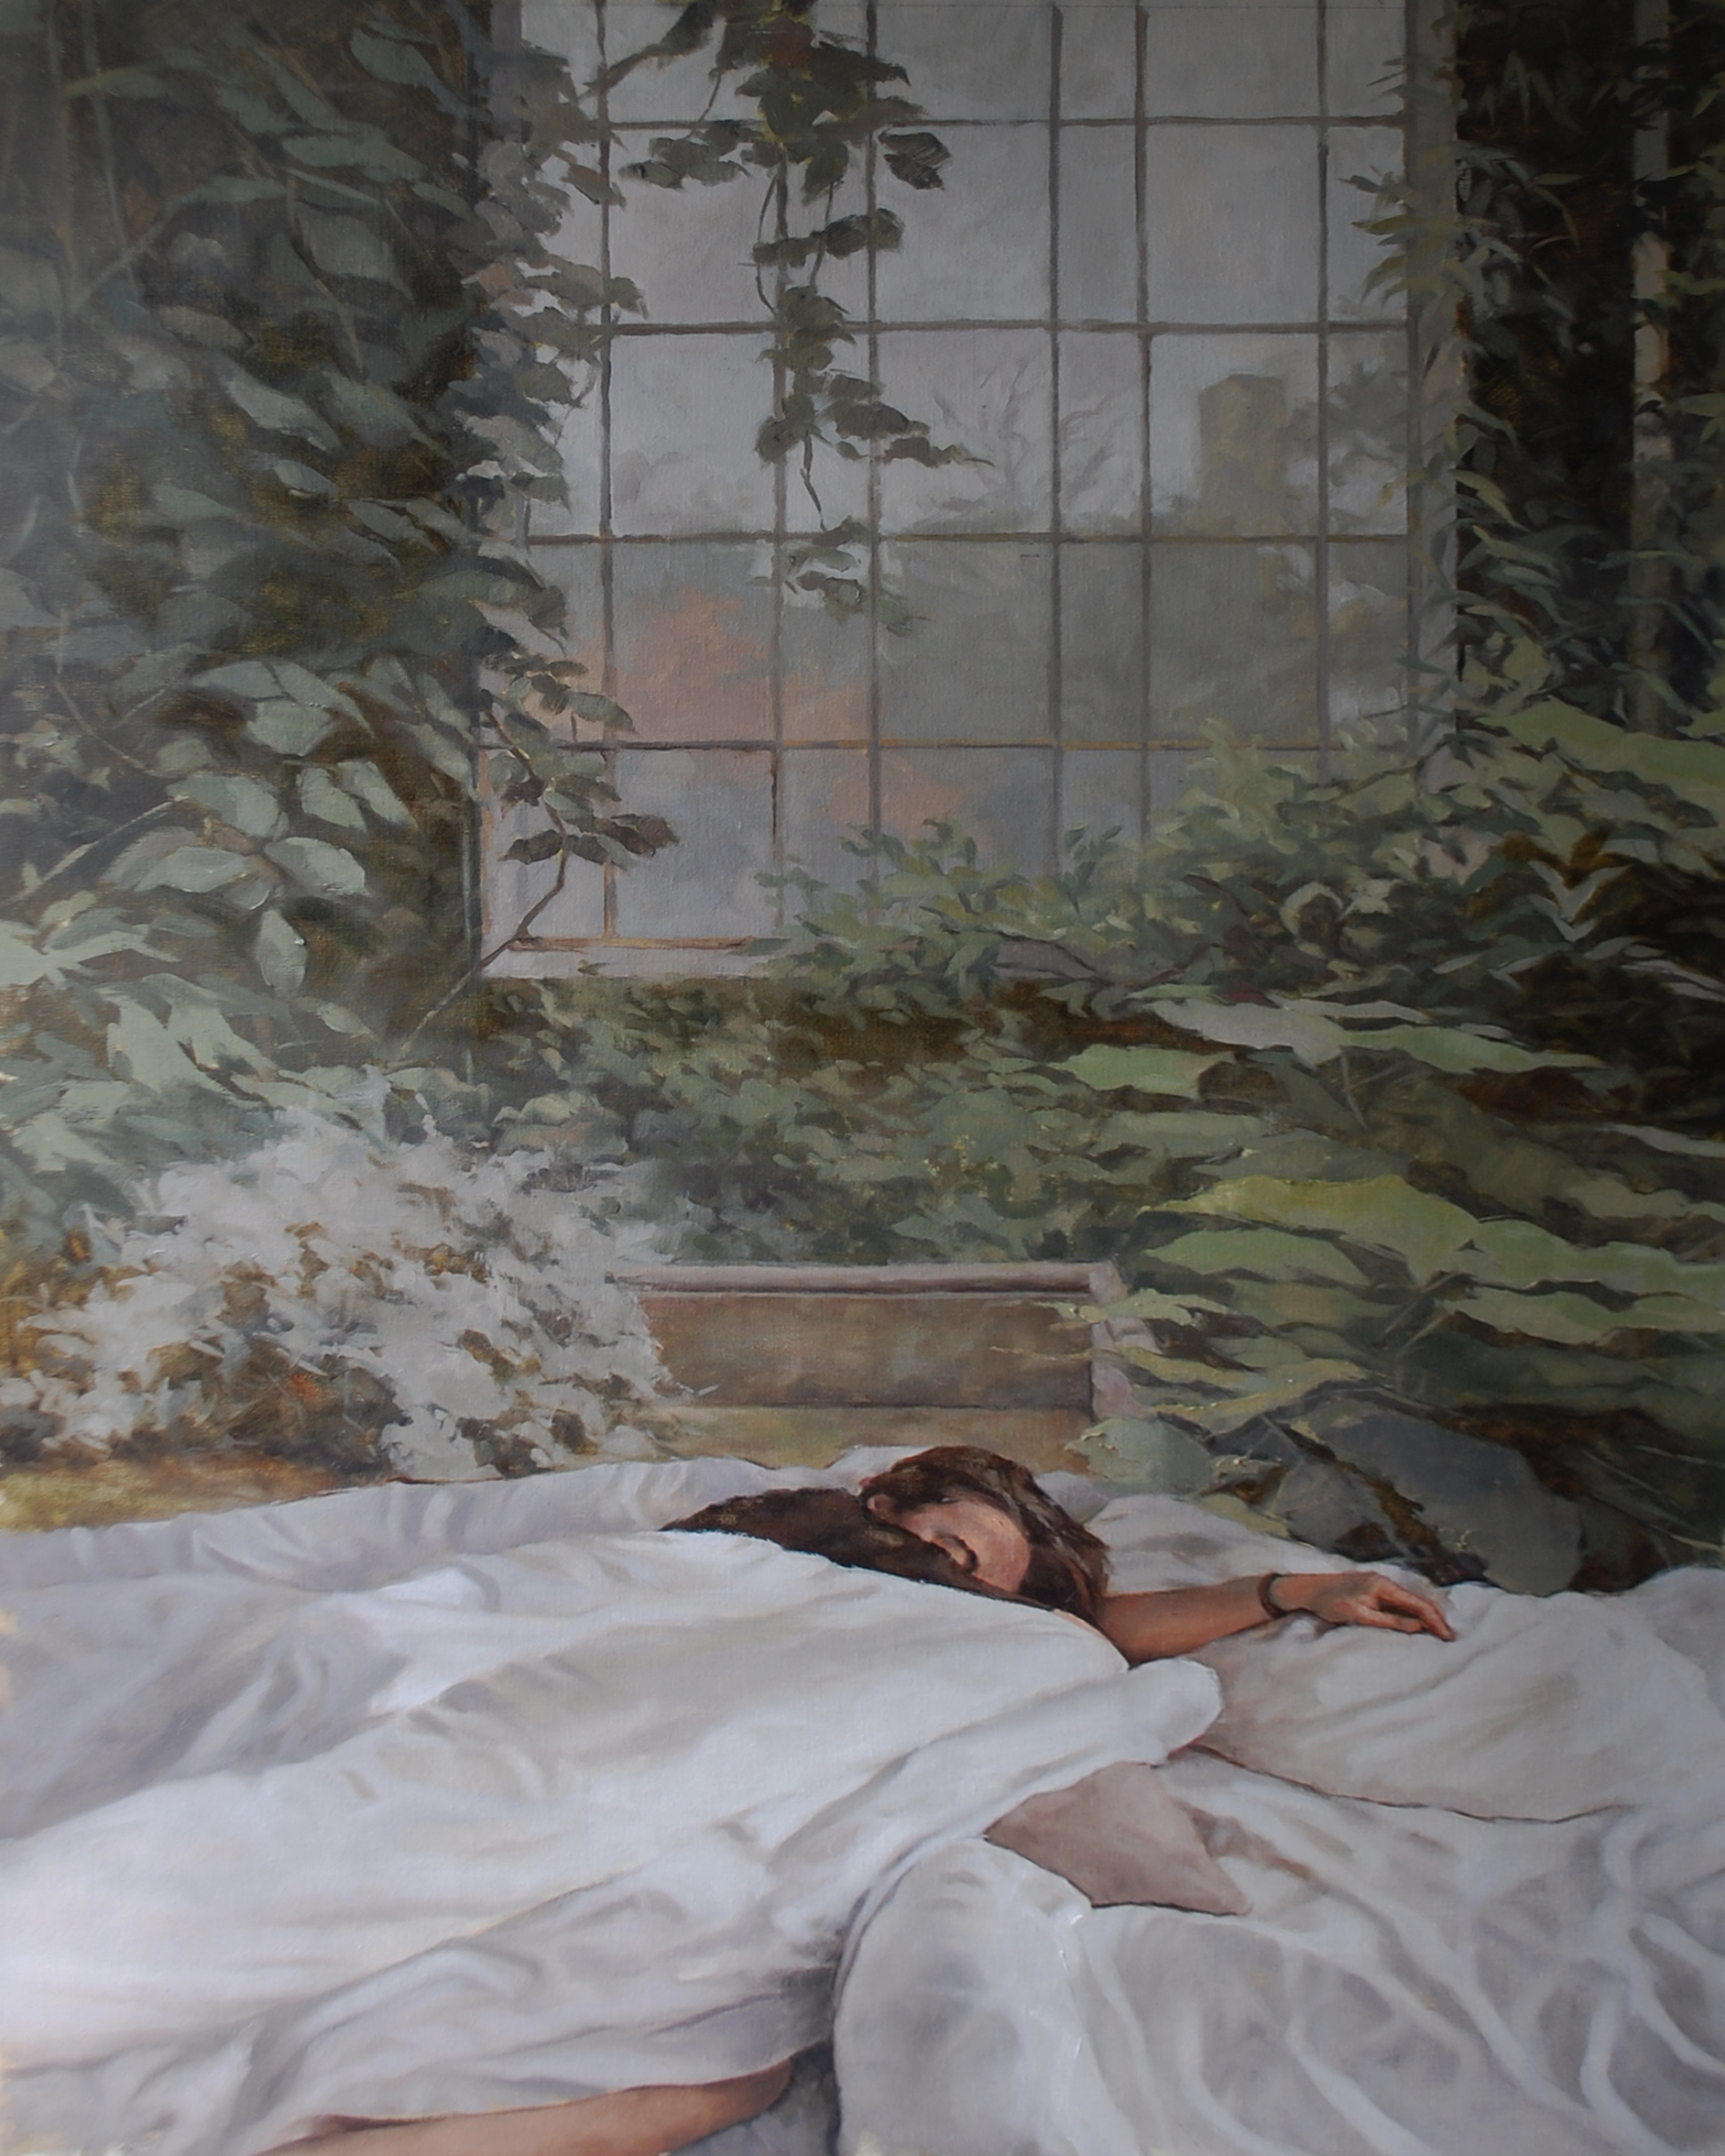 Painting of a woman sleeping